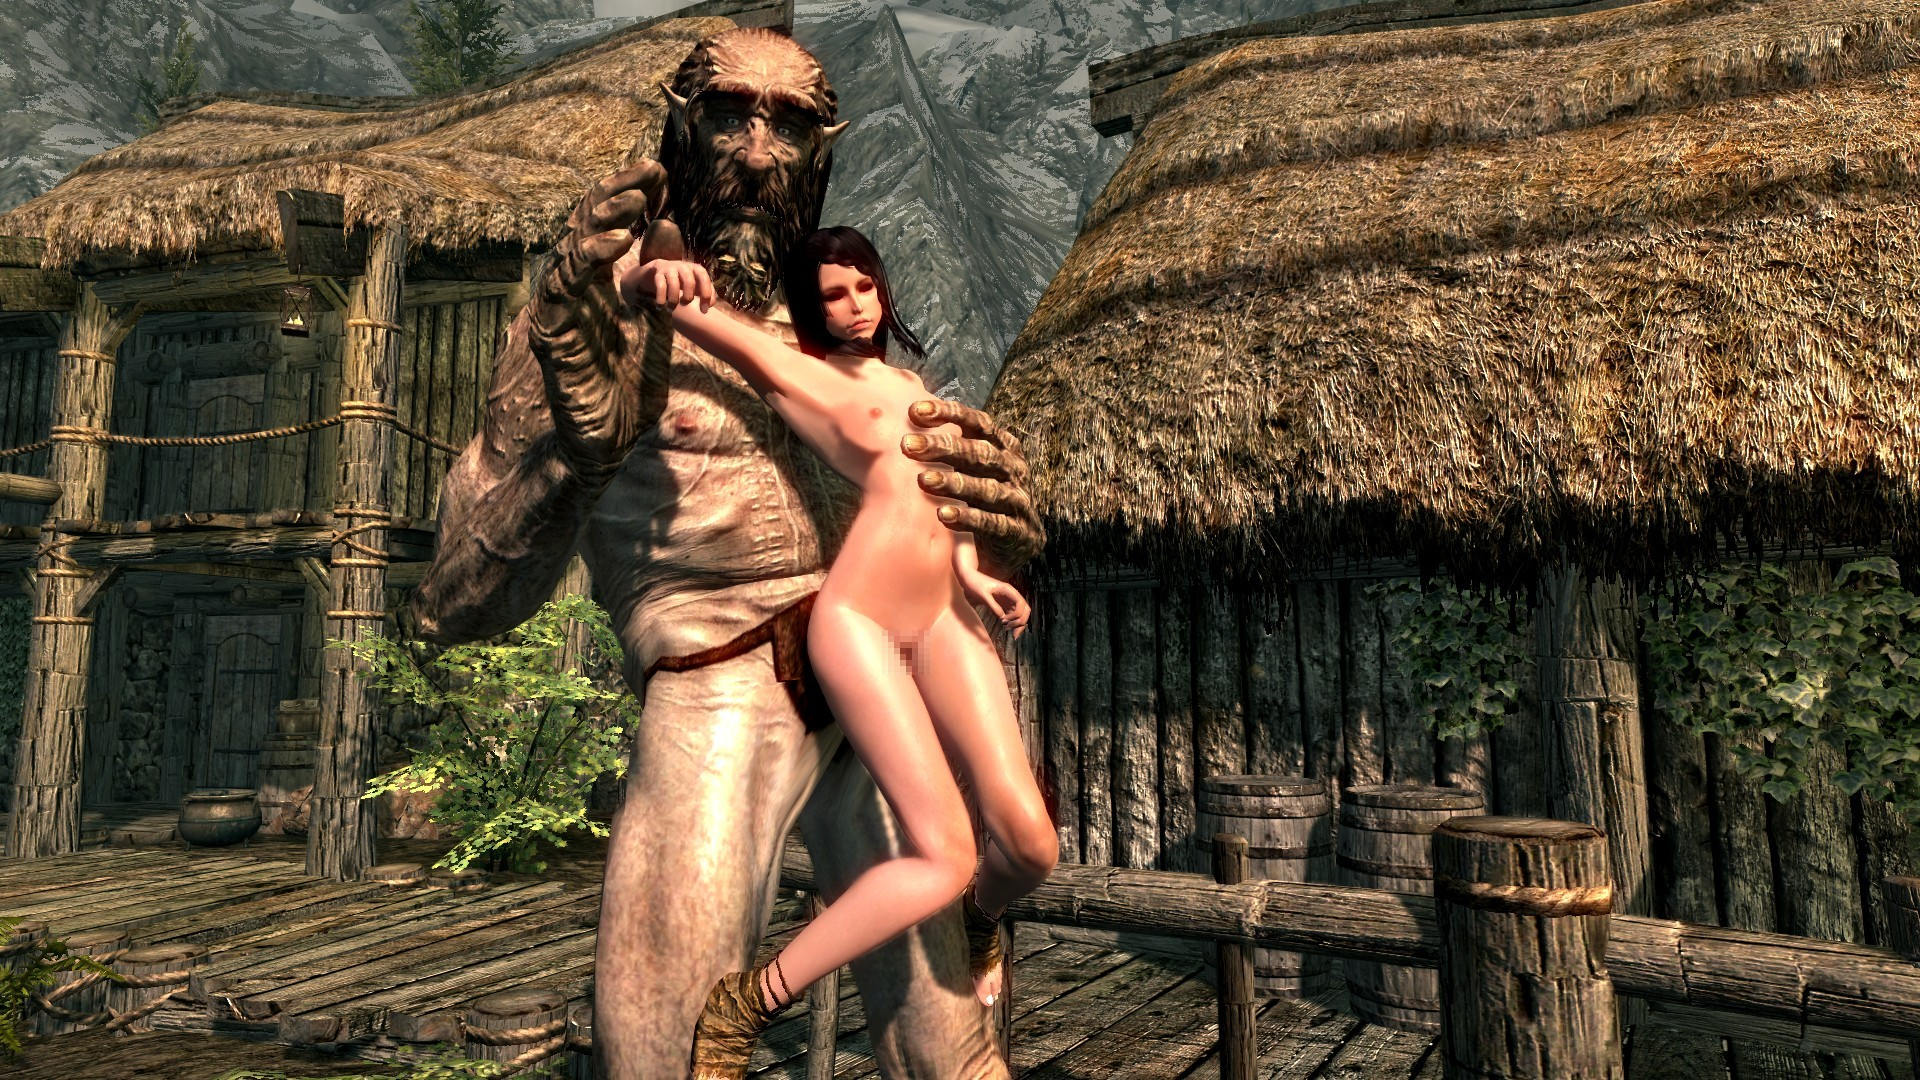 Nude patch in skyrim hentai scene